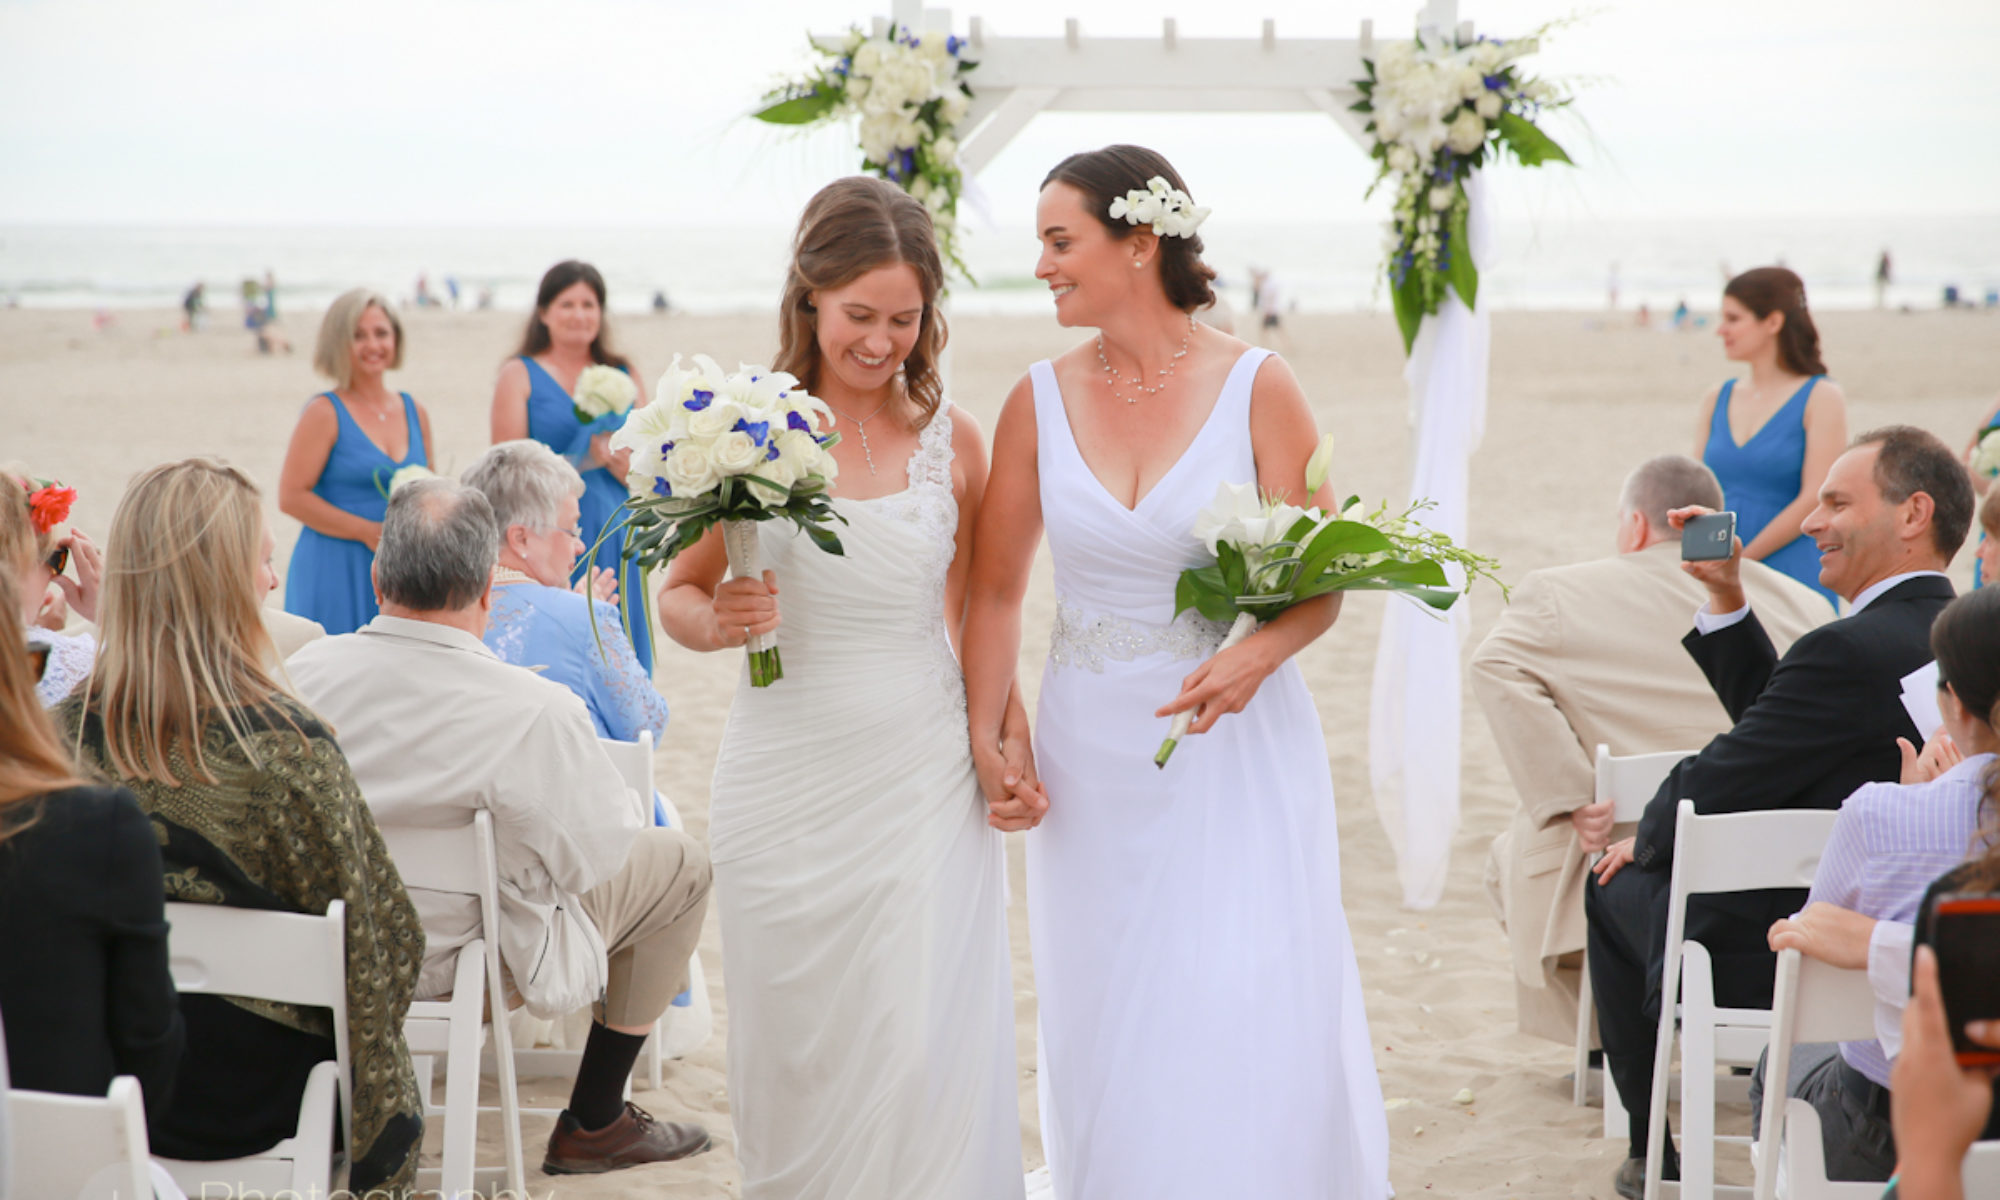 cropped-Pismo-Beach-Wedding-Photographer_Sea-Venture-Inn_LGBT-Wedding-Photographer_Gay-friendly-photographer_destination-wedding_California_Lesbian-wedding-4141.jpg